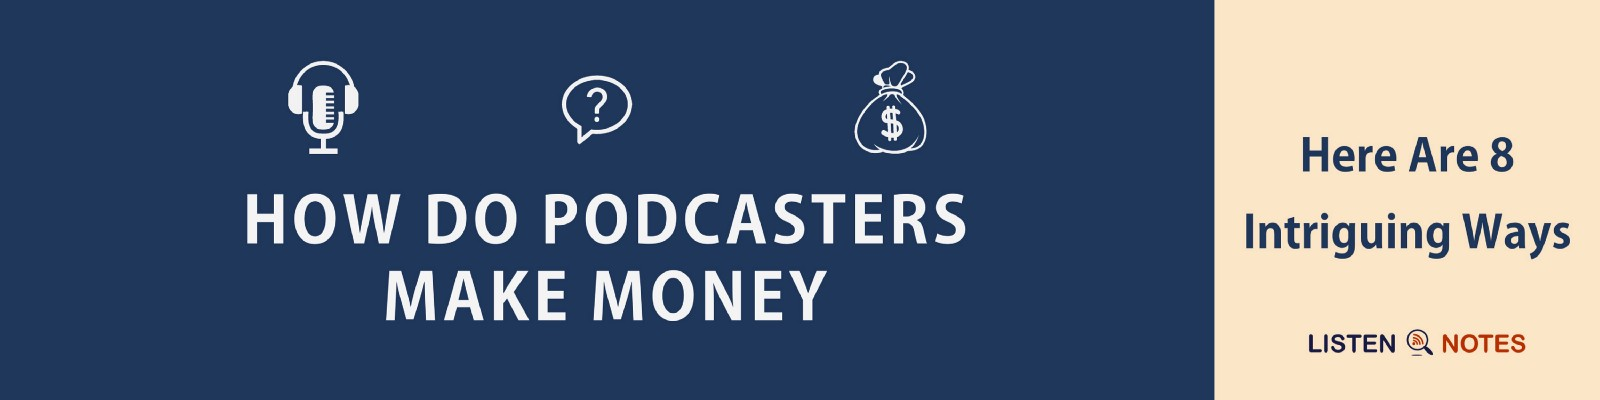 How Do Podcasts Make Money in 2019? Here Are 8 Intriguing Ways